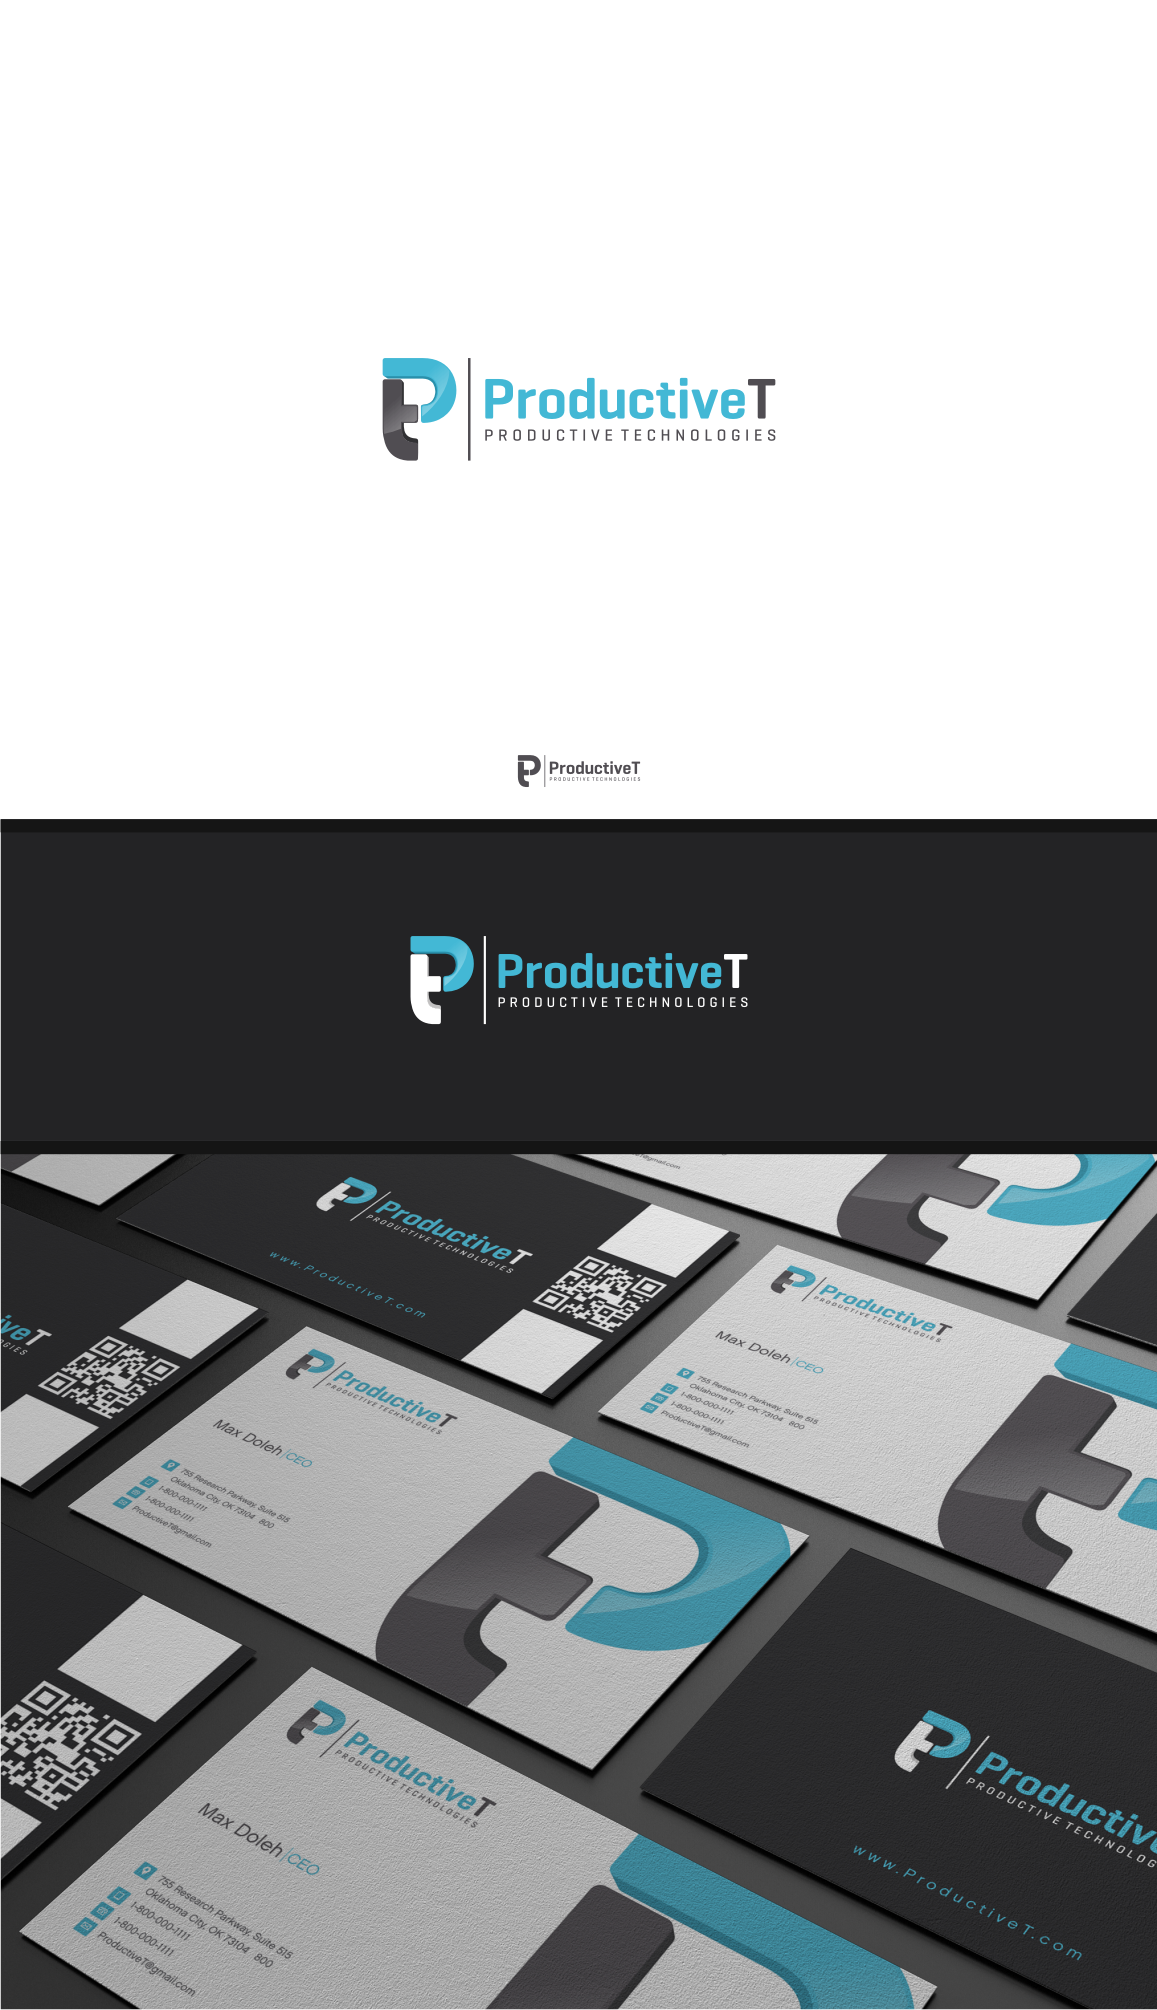 Create logo and business card for Productive Technologies